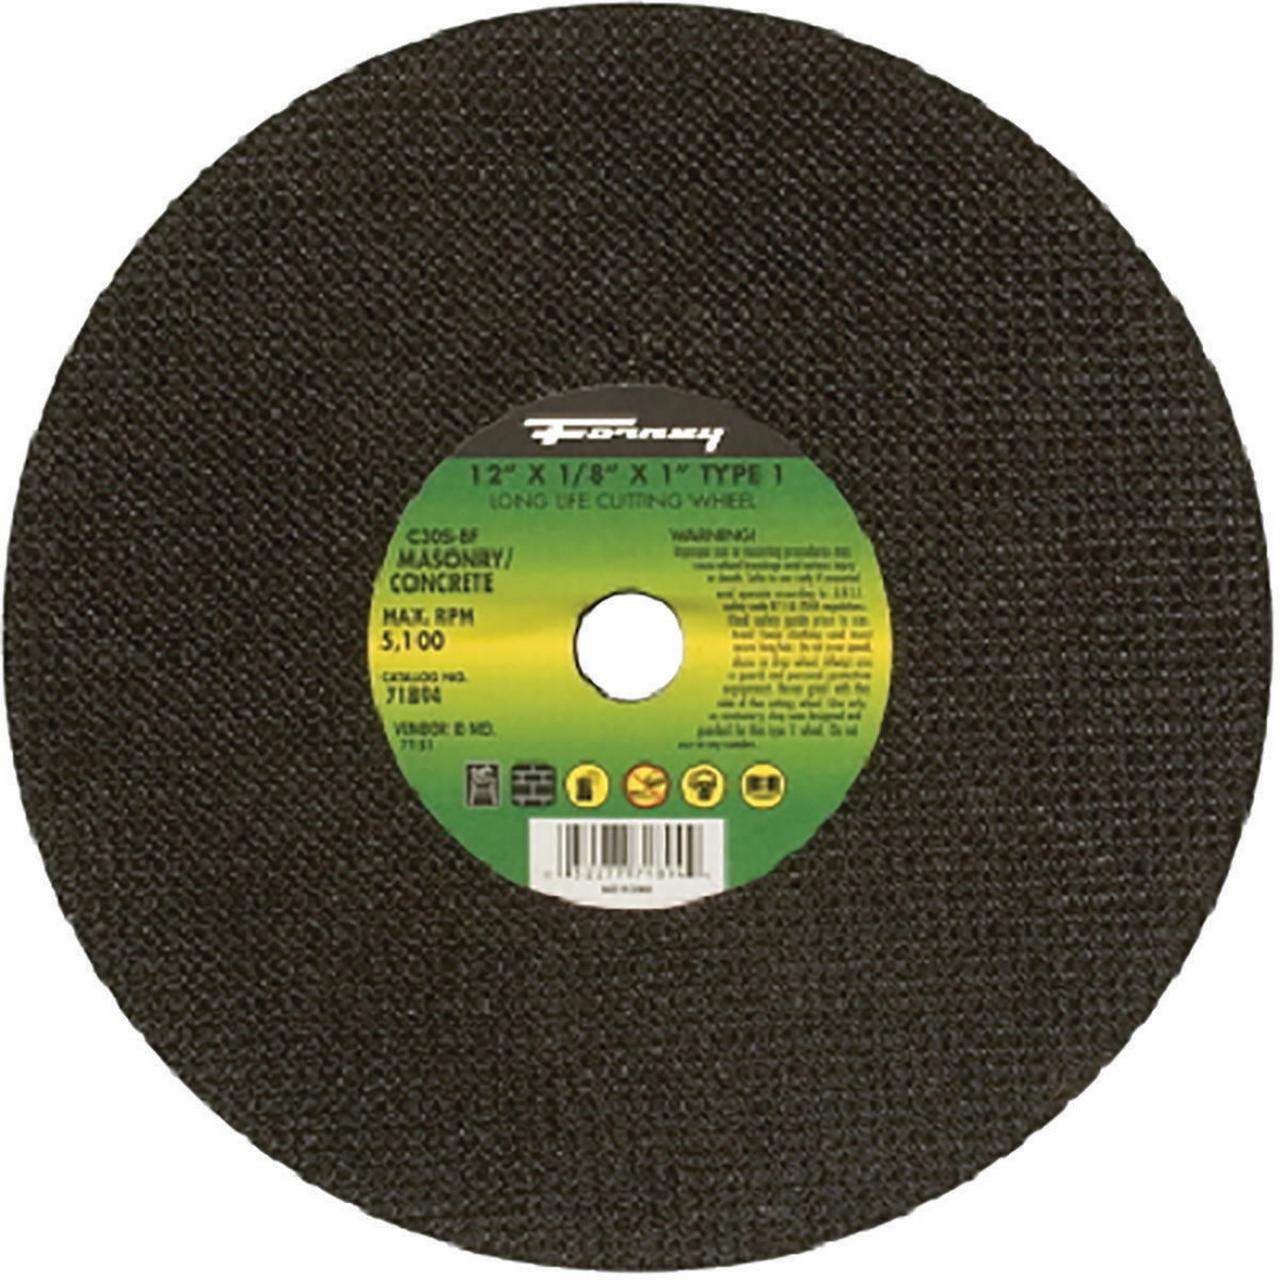 Forney Industries 71894 Type 1 Circular Shape Flat Cut-Off Wheel, 12 in Dia x 1/8 in T, 20 Grit, 1 i